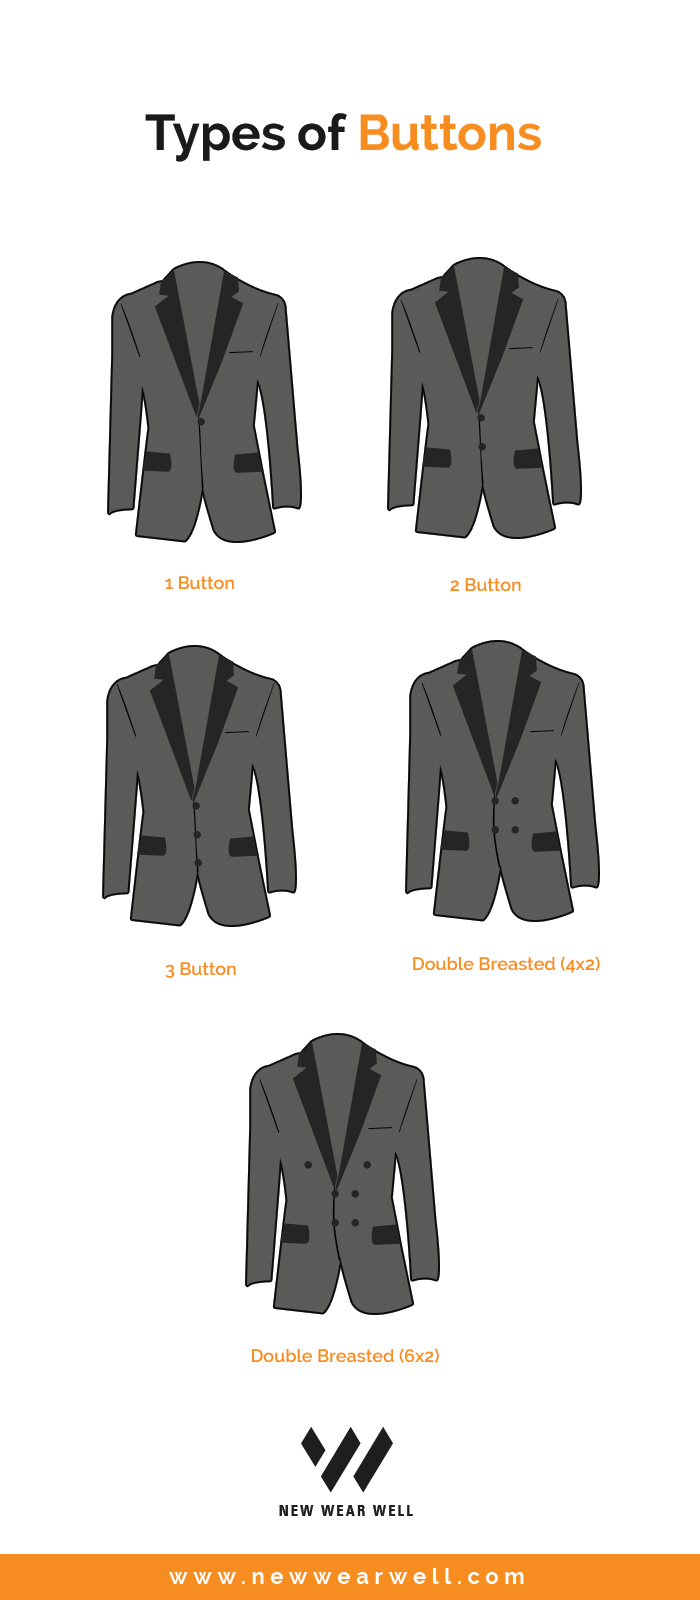 bespoke suits, best bespoke suits, men's bespoke suits, custom tailored suits, best custom tailored suits, mens wedding wear, best sherwanis, designer sherwanis, men's indo western, best designer sherwanis online, best men suit tailors, best men suits online